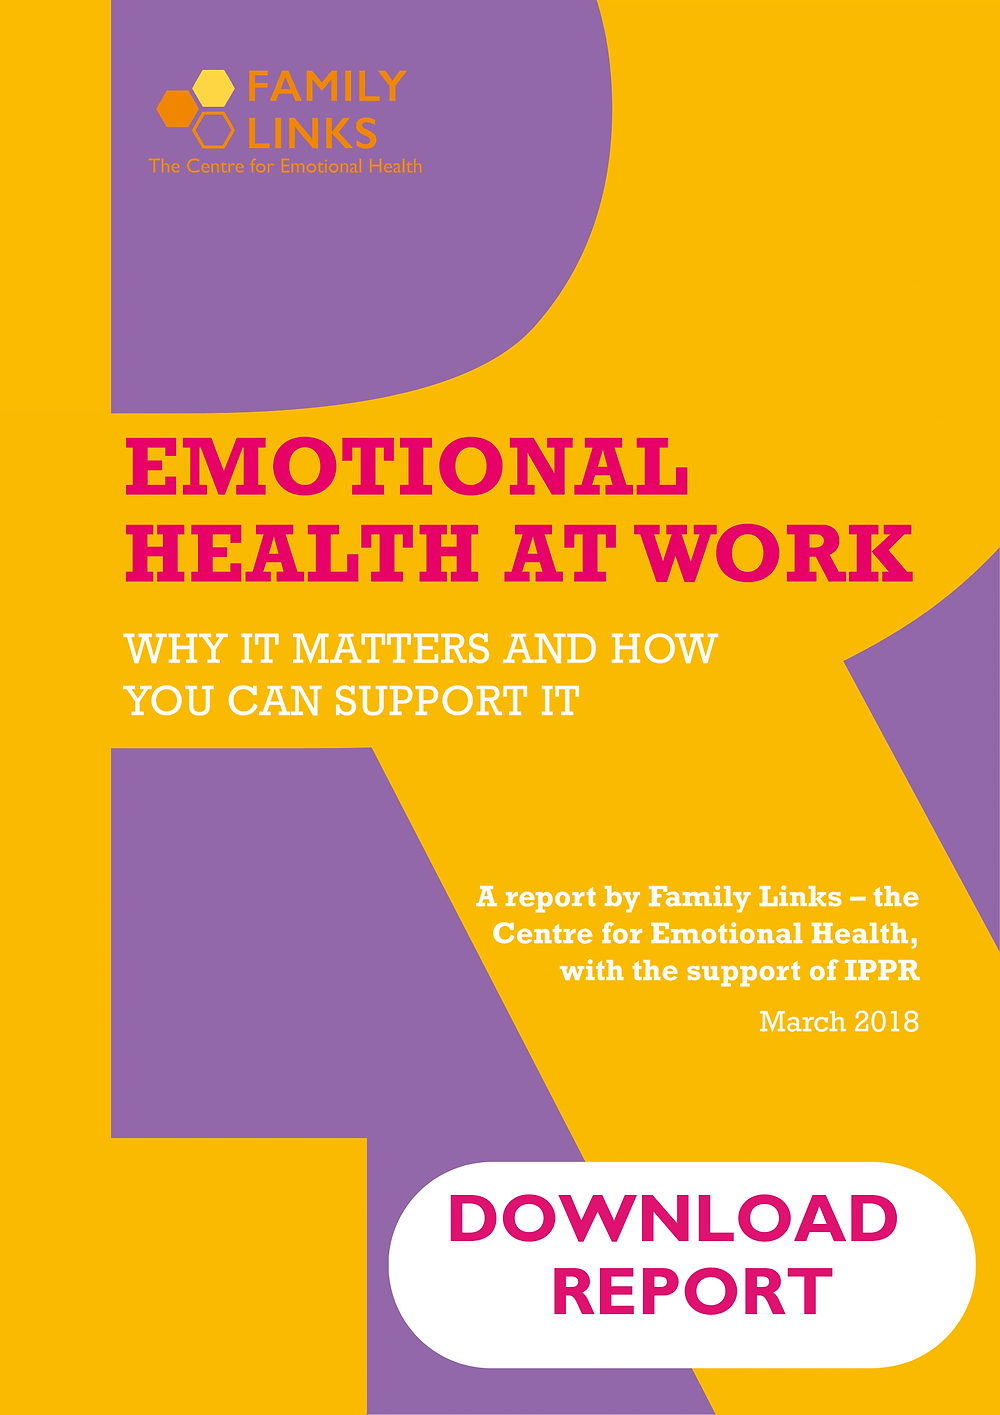 Emotional Health at Work Report front cover. Title text is pink and subtitles are white. The background is yellow and purple.